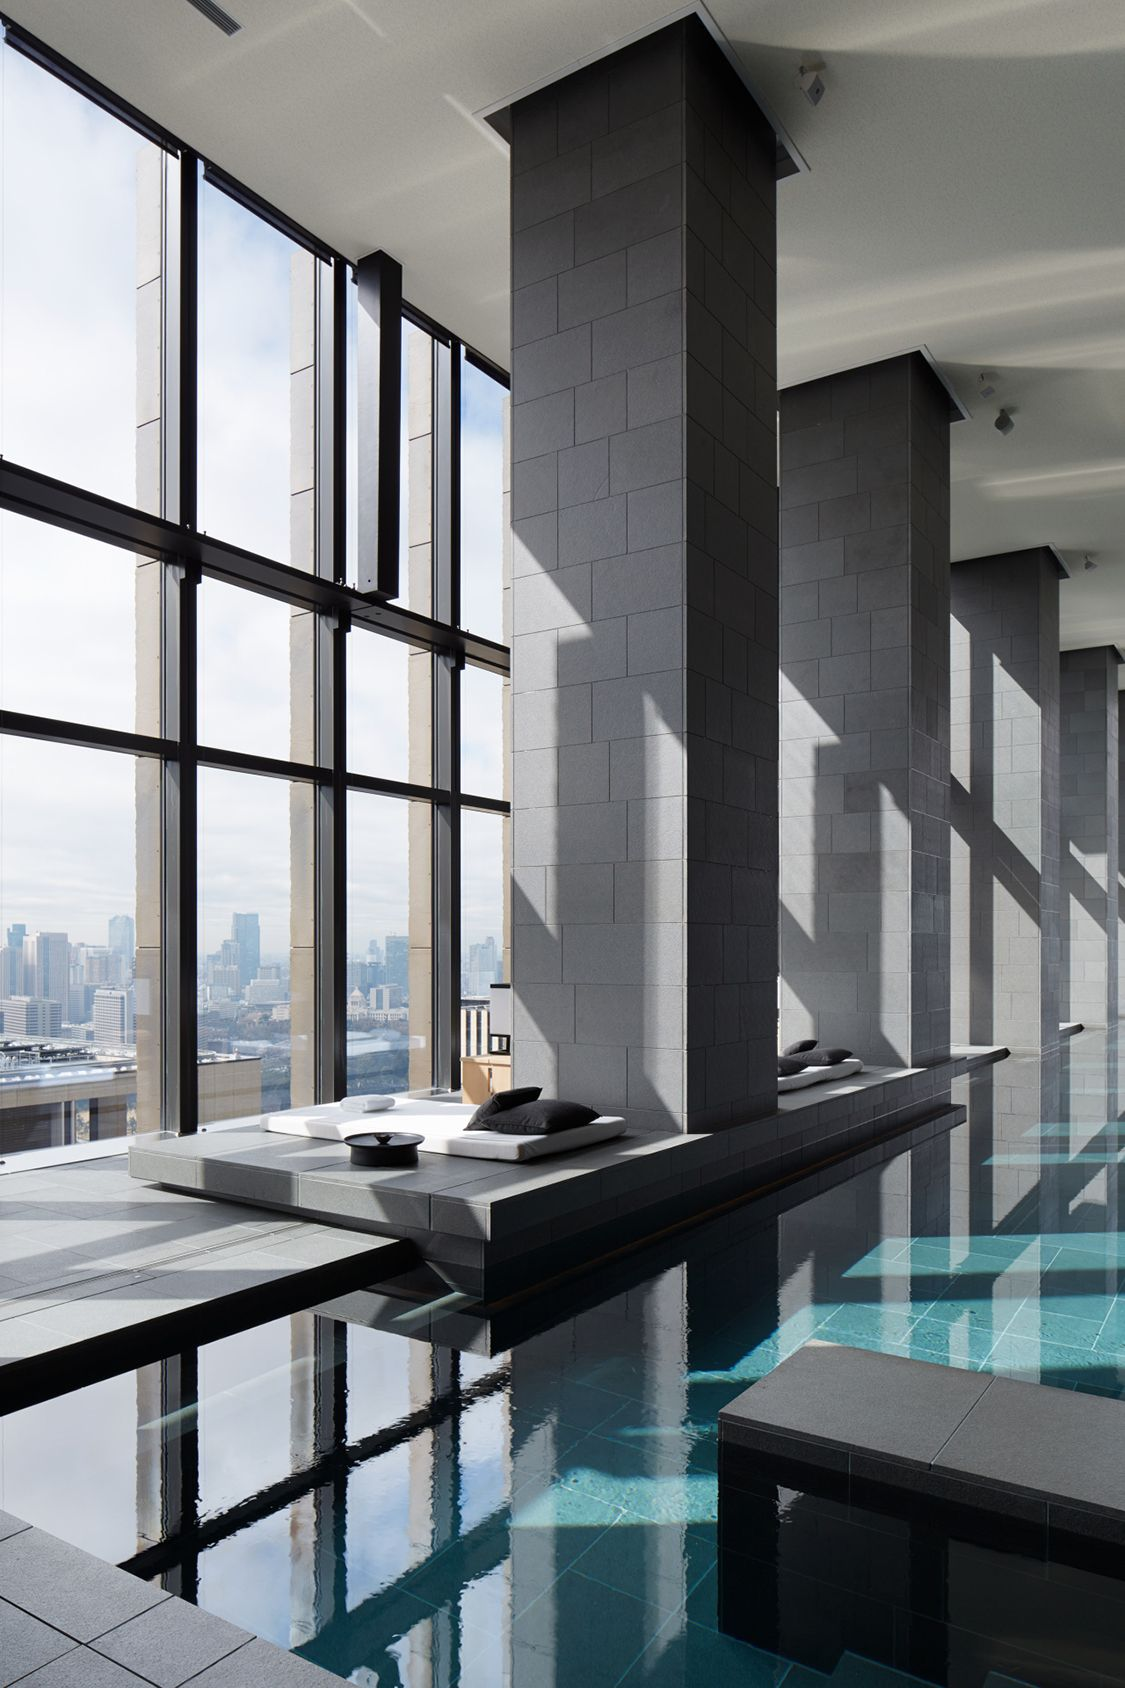 Aman Tokyo - A Resort In The Sky (Review